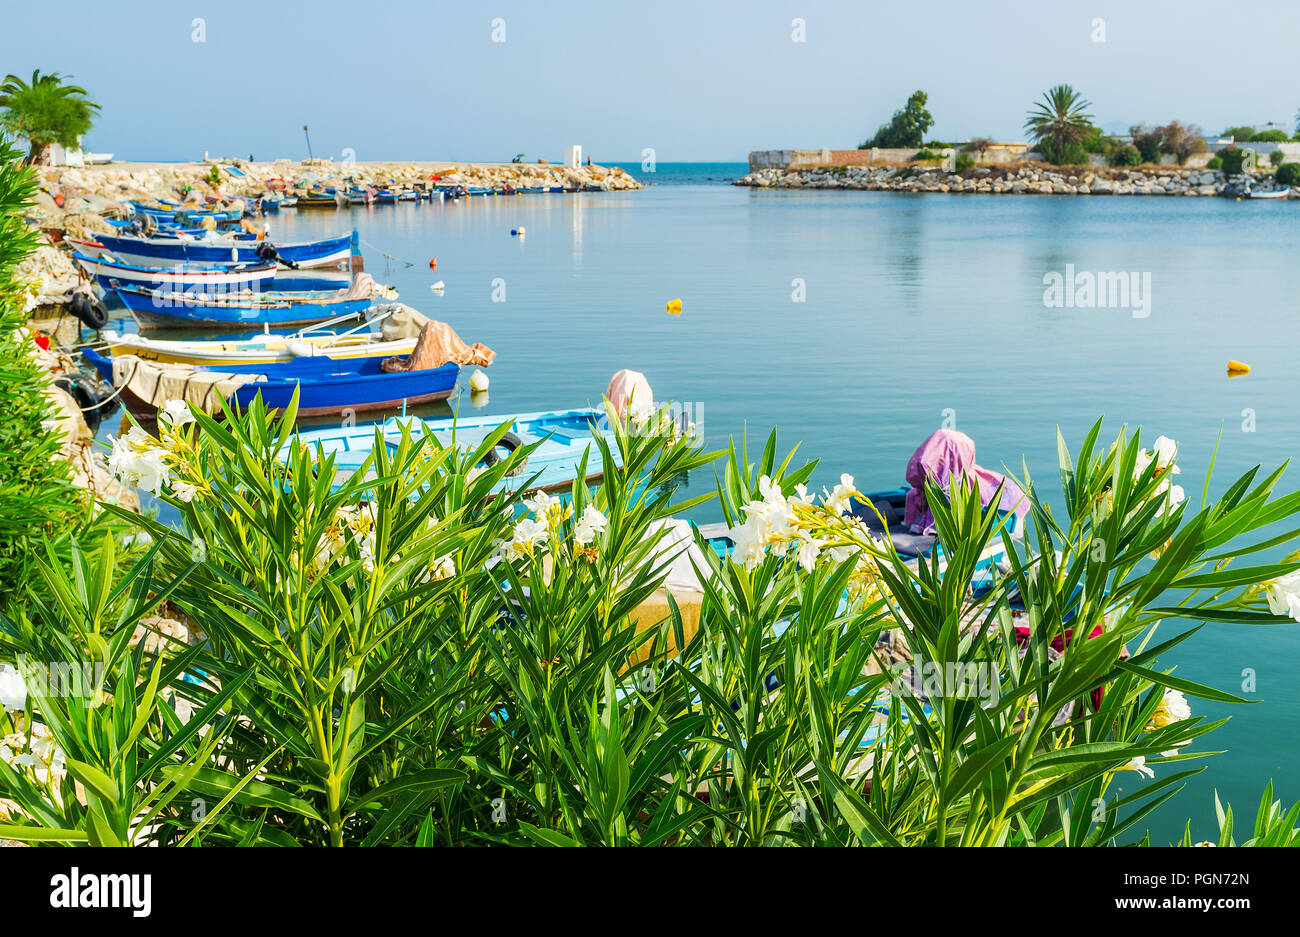 The picturesque ancient port of Carthage with greenery along the shore and numerous fishing boats, Tunisia. - Stock Image